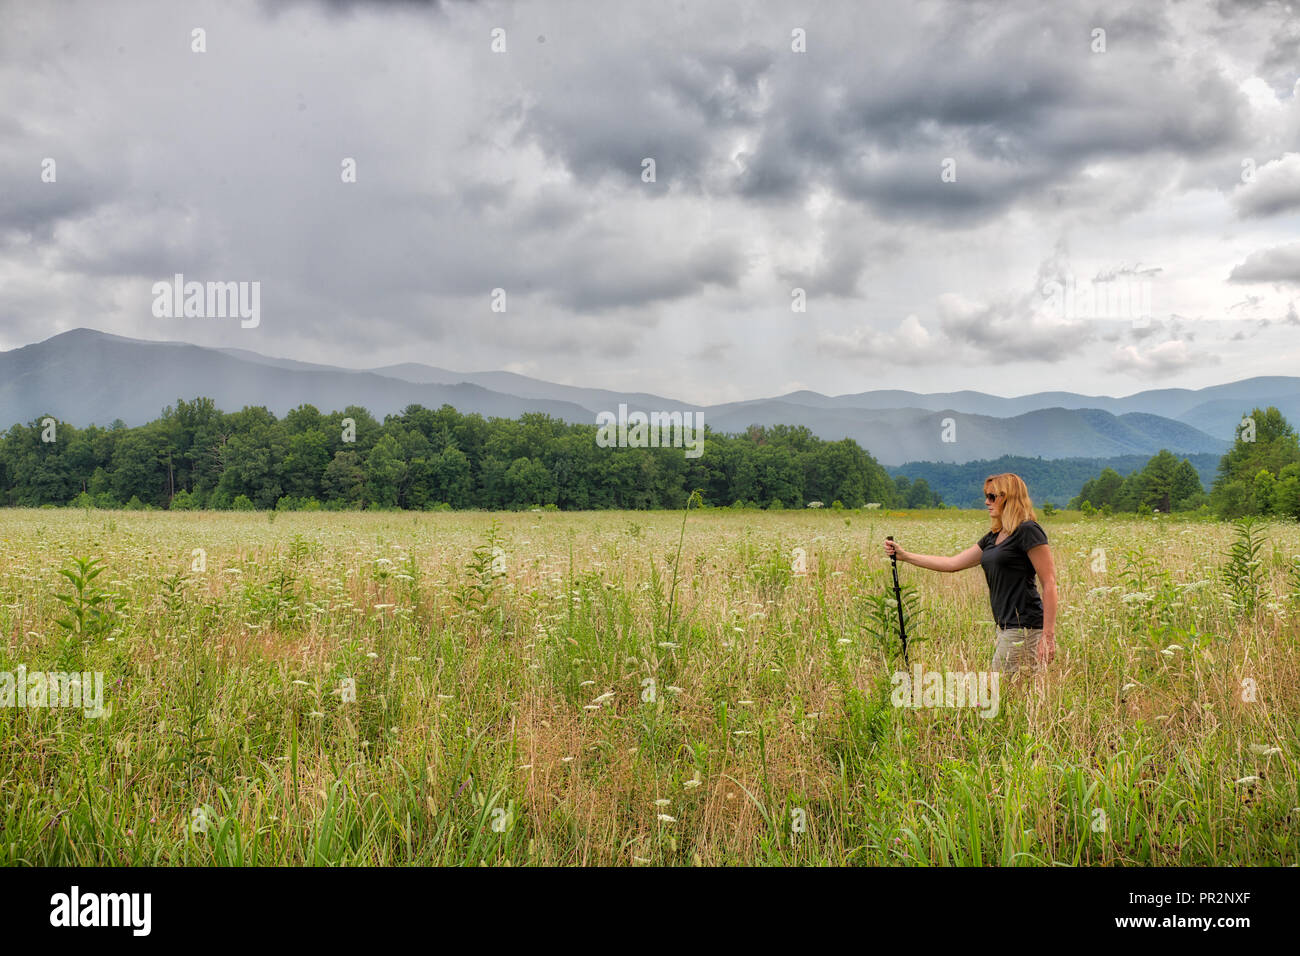 Caucasian woman walking in a green meadow in the Great Smoky Mountains on a cloudy day - Stock Image